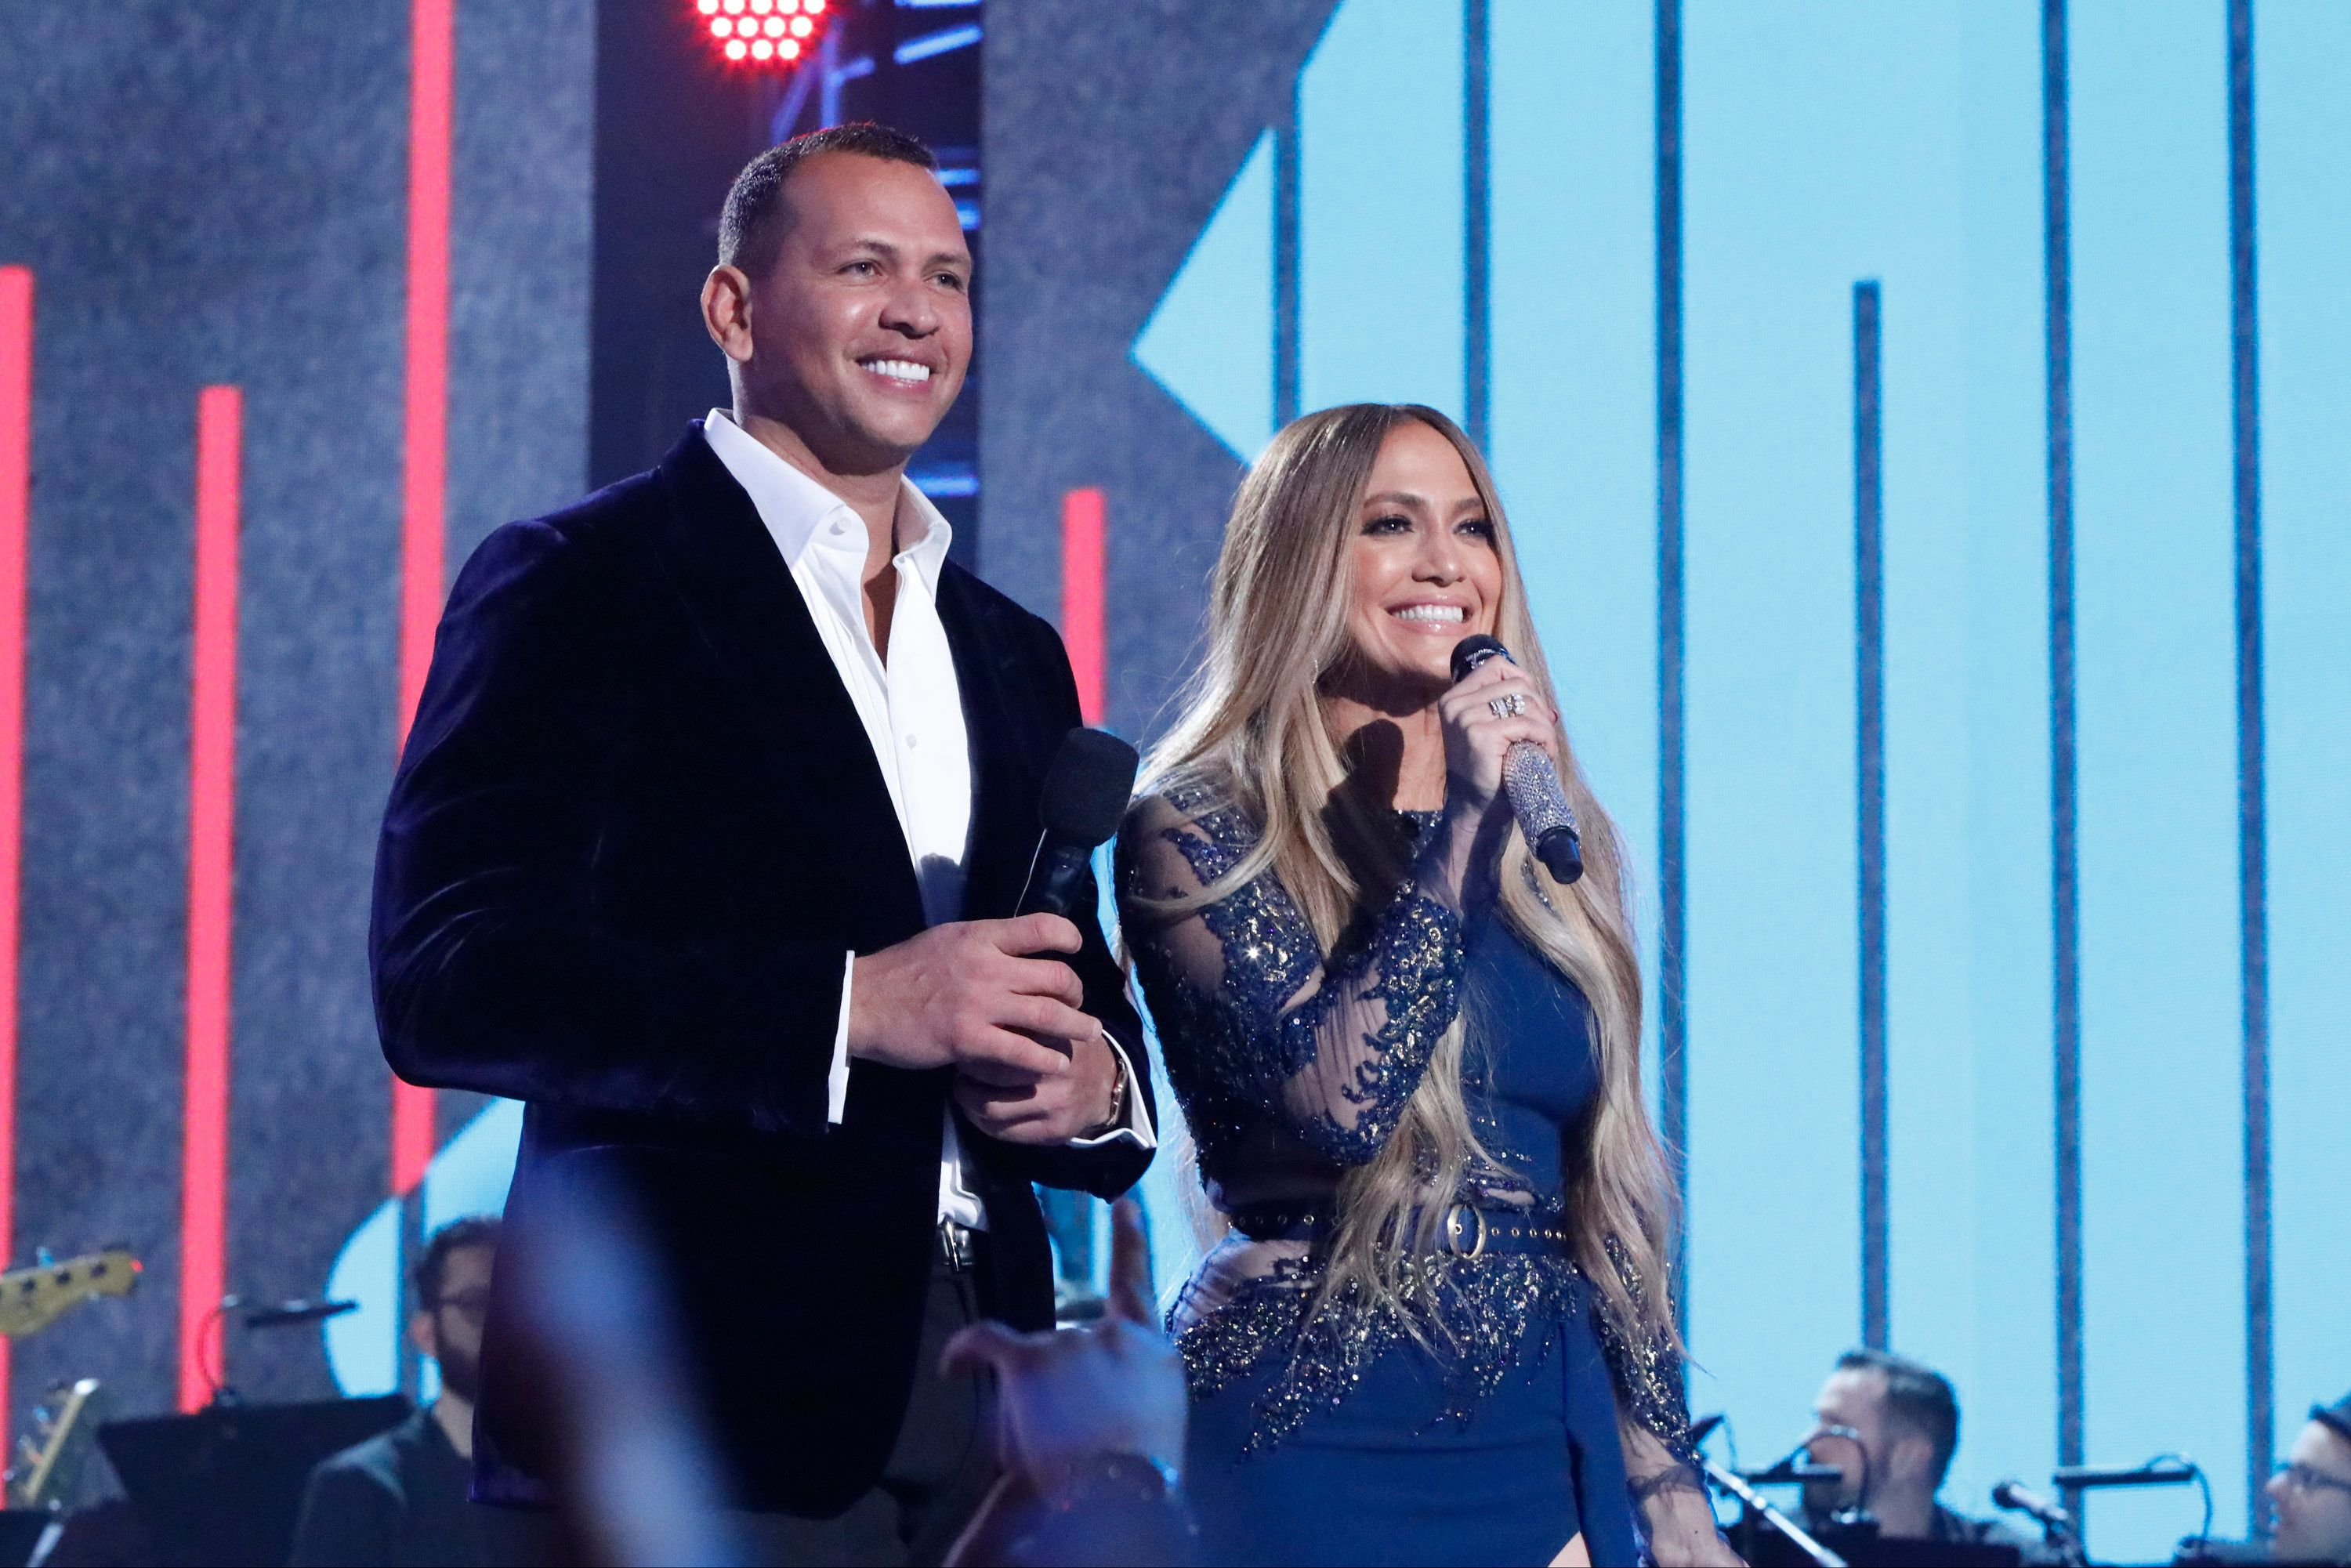 LOS ANGELES, CA - OCTOBER 14:  In this handout photo provided by One Voice: Somos Live!,  (l-r) Alex Rodriguez and Jennifer Lopez participate in the phone bank during 'One Voice: Somos Live! A Concert For Disaster Relief' at the Universal Studios Lot on October 14, 2017 in Los Angeles, California.  (Photo by Evans Vestal Ward /NBCUniversal/One Voice: Somos Live!/Getty Images)